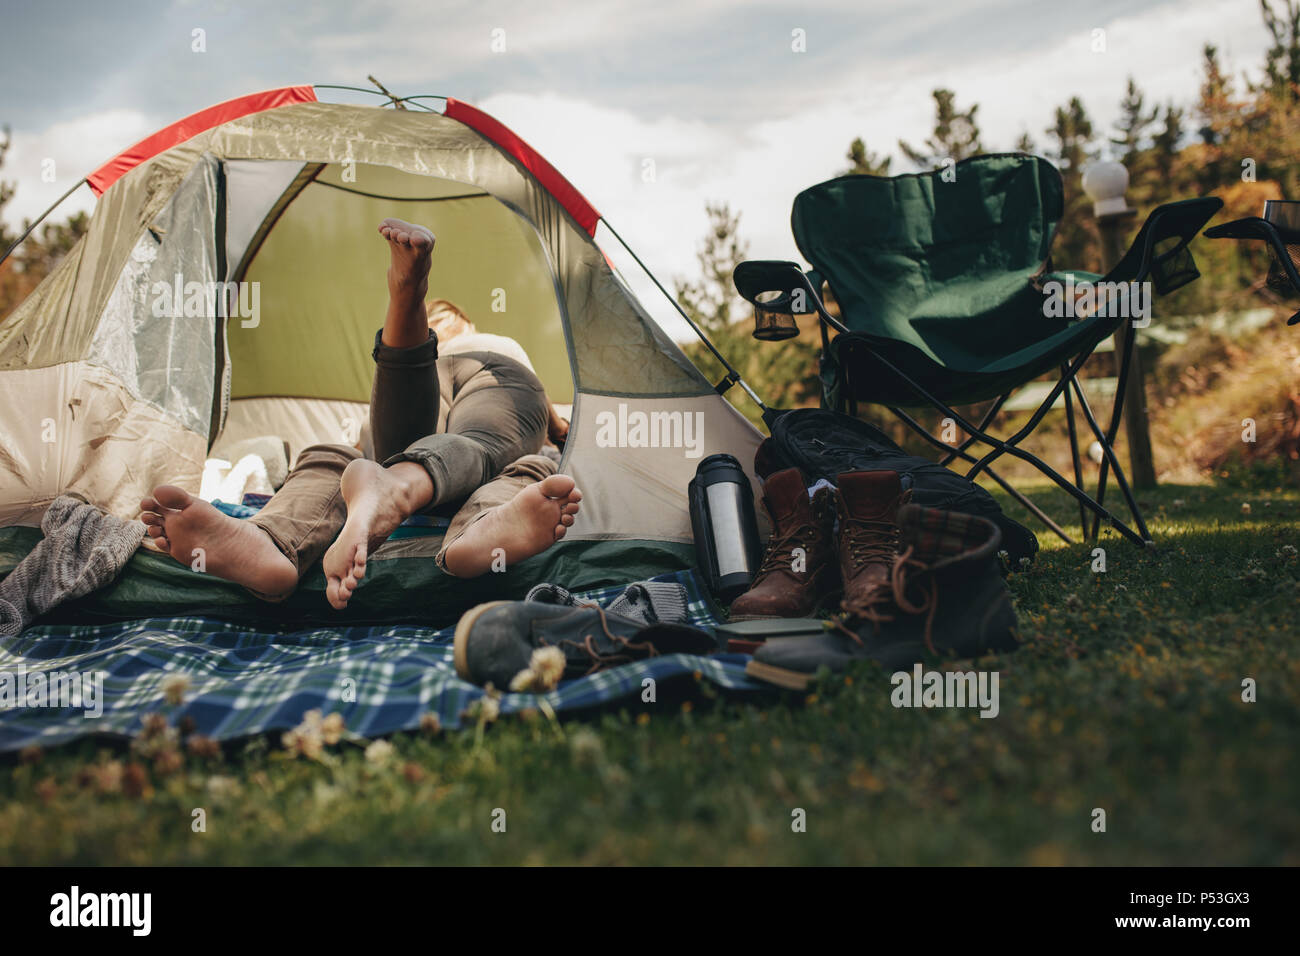 Romantic young couple lying inside a tent at campsite. Man and woman in love in a tent. - Stock Image